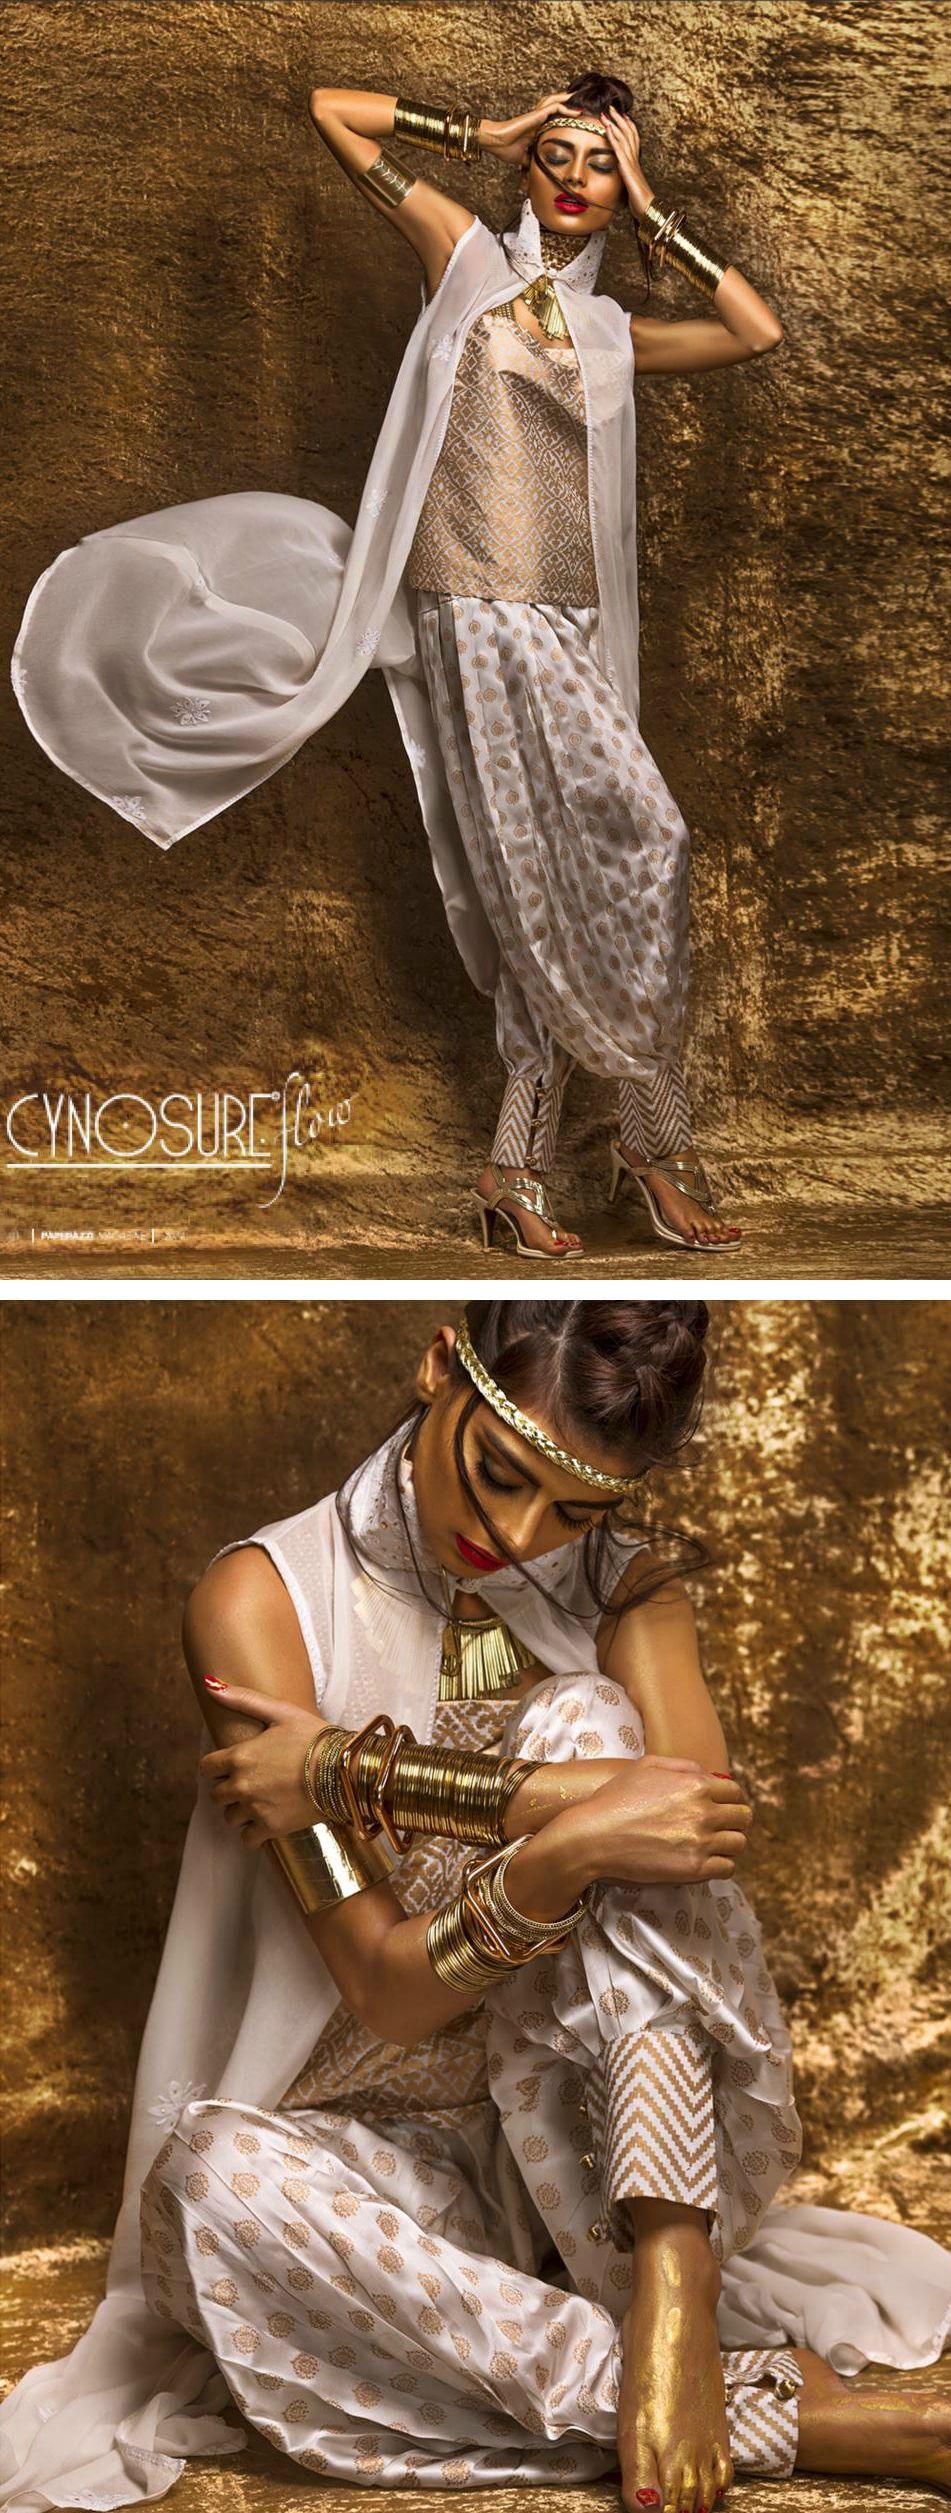 Cynosure By Touseef Ahmad